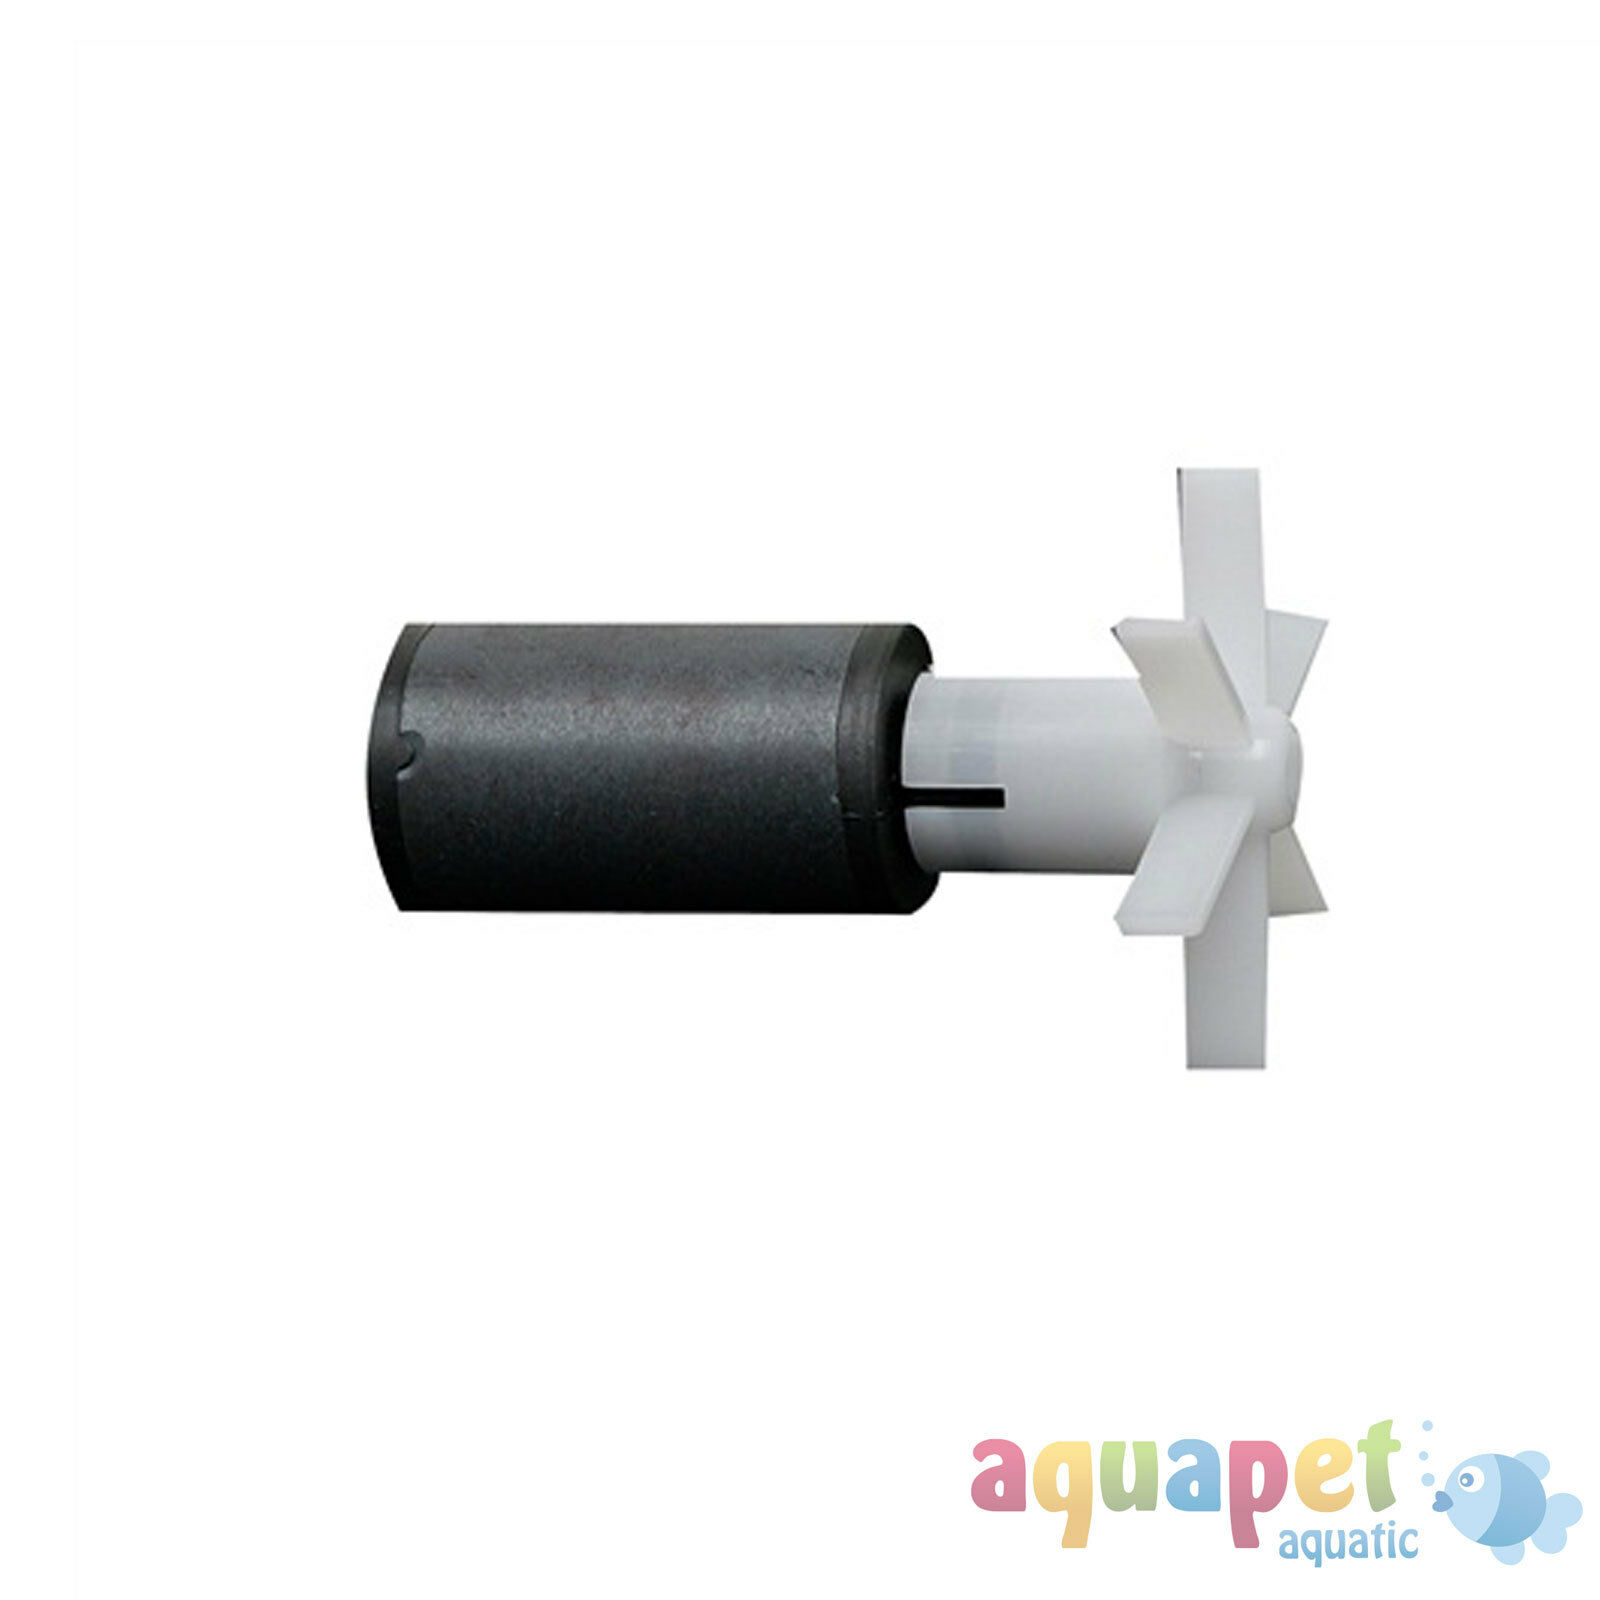 Fluval 405 External Filter Magnetic Impeller